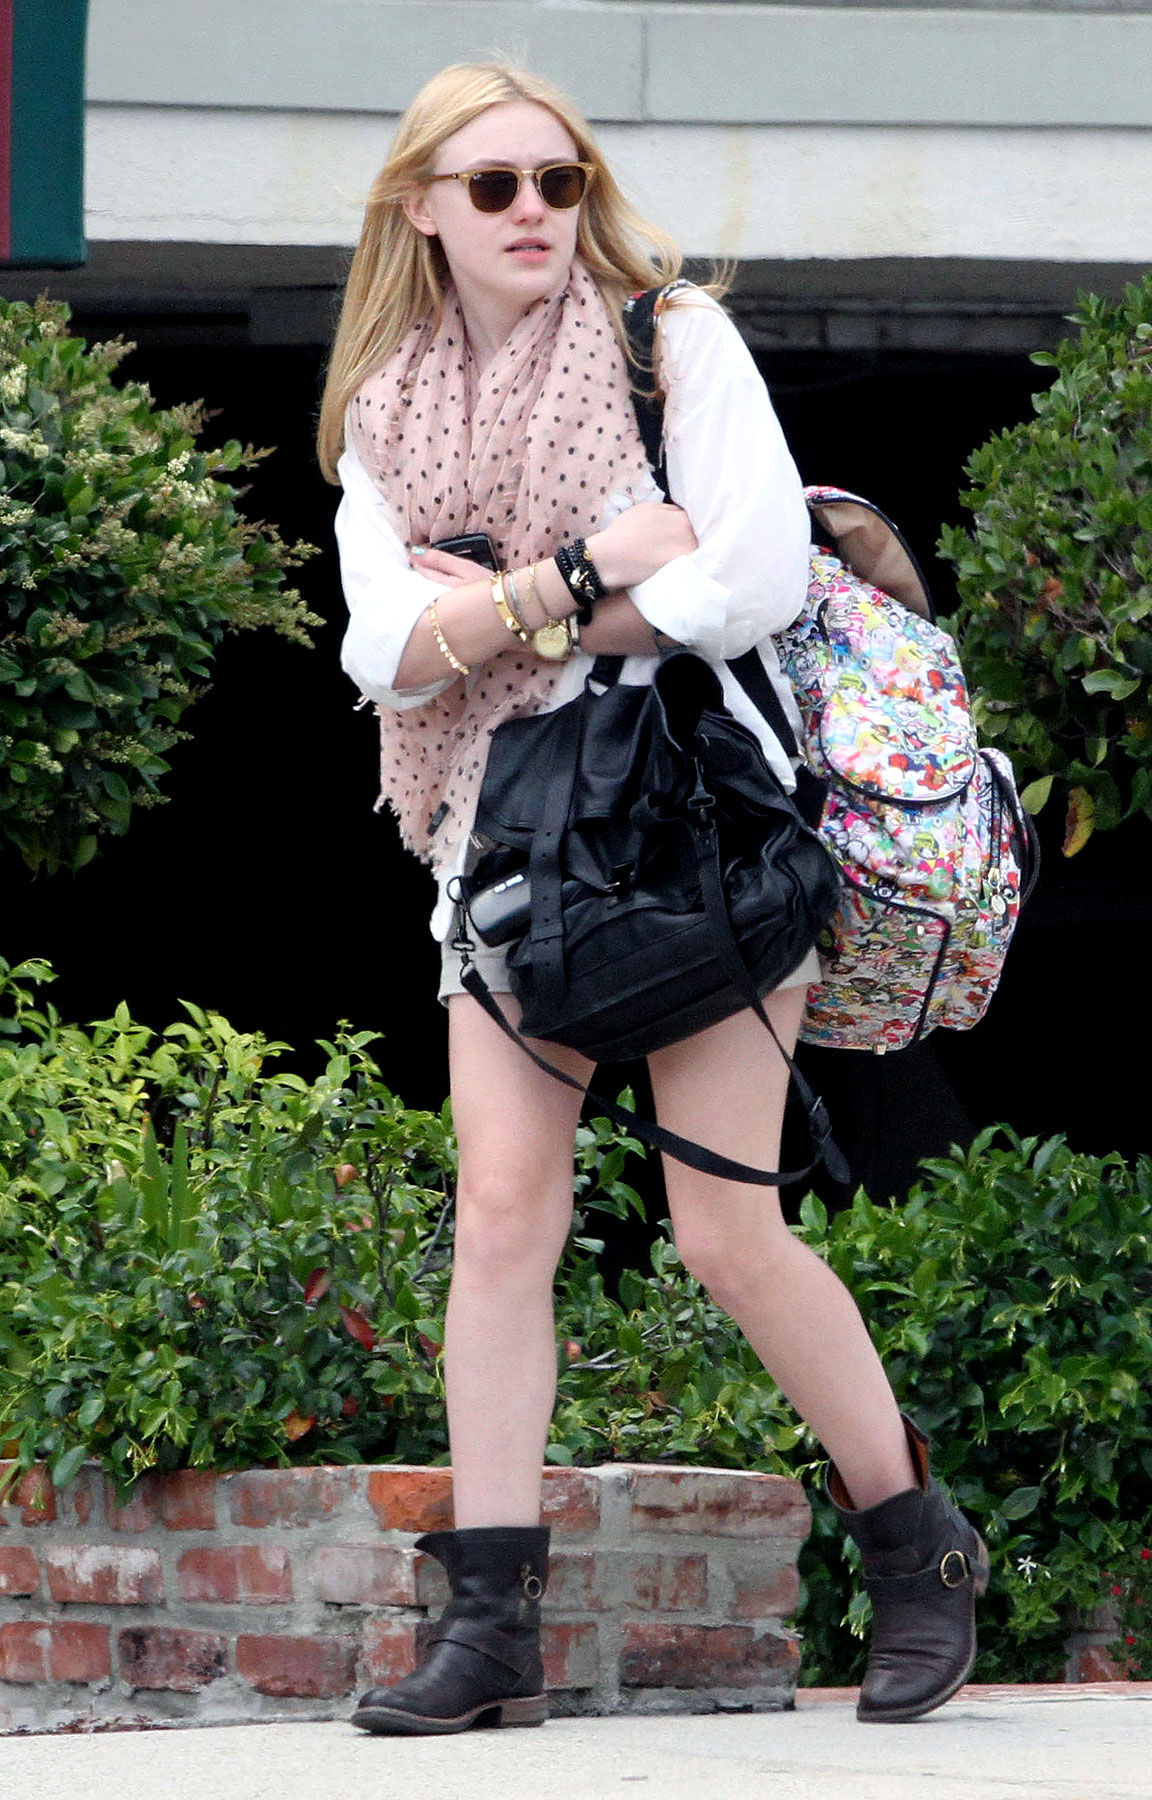 Not Even Dakota Fanning Can Catch A Ride After School (PHOTOS)